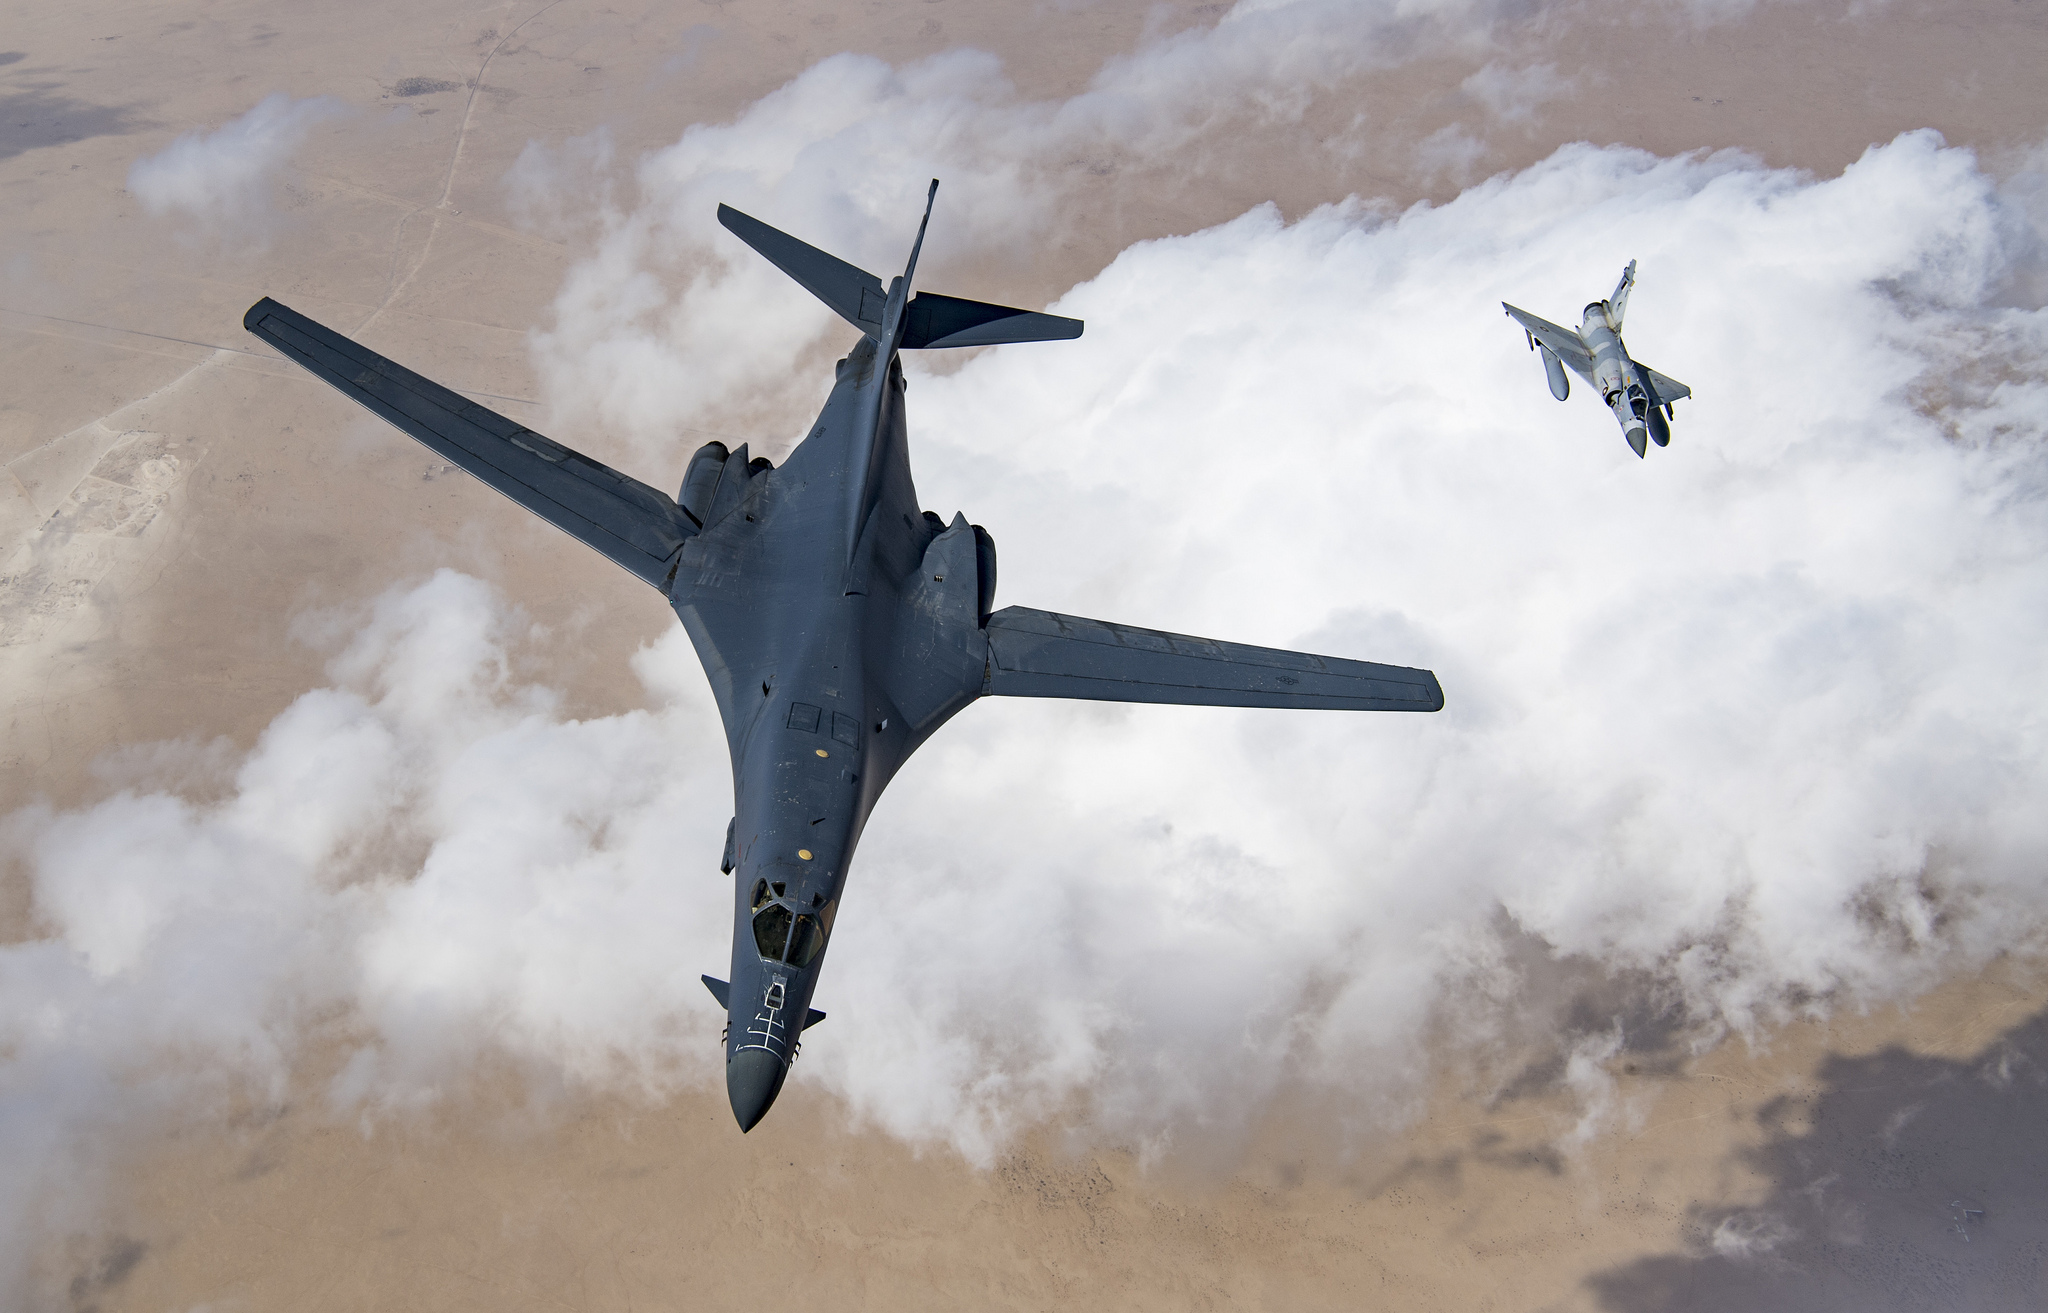 A U.S. Air Force B-1B Lancer bomber and a Qatari Mirage 2000 fly in formation, Feb. 19, 2019. (Staff Sgt. Clayton Cupit/Air Force)